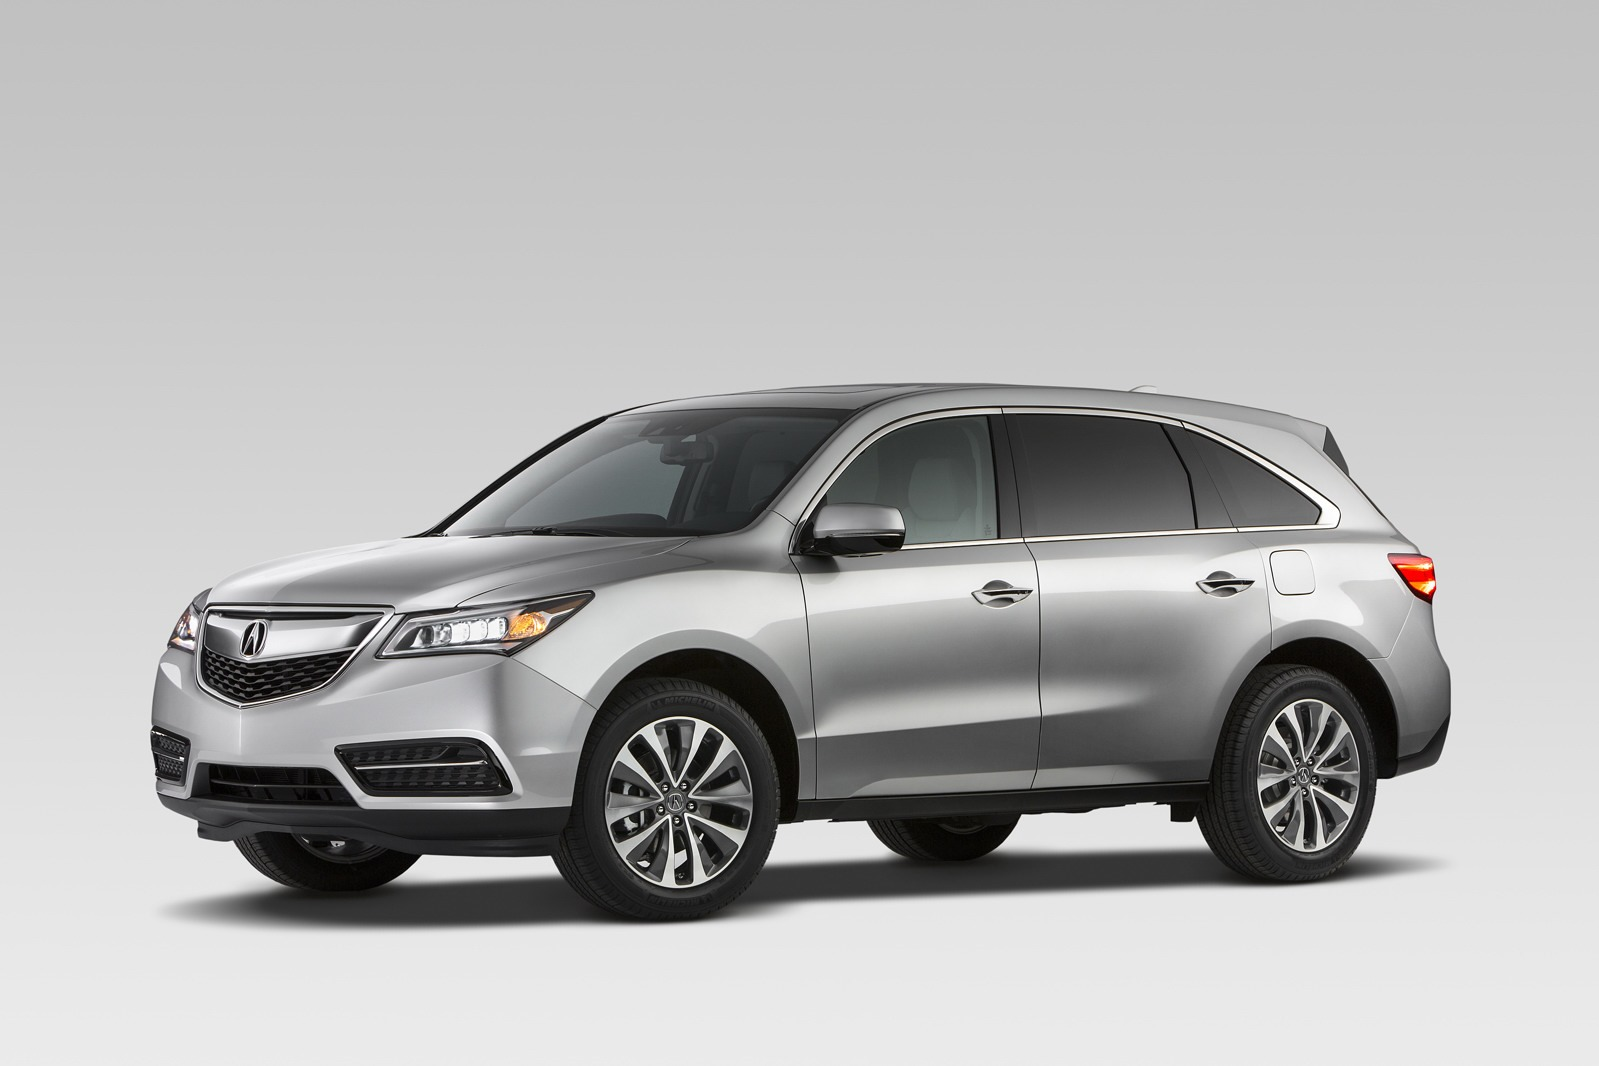 2013 acura mdx suv photo gallery car gallery premium. Black Bedroom Furniture Sets. Home Design Ideas